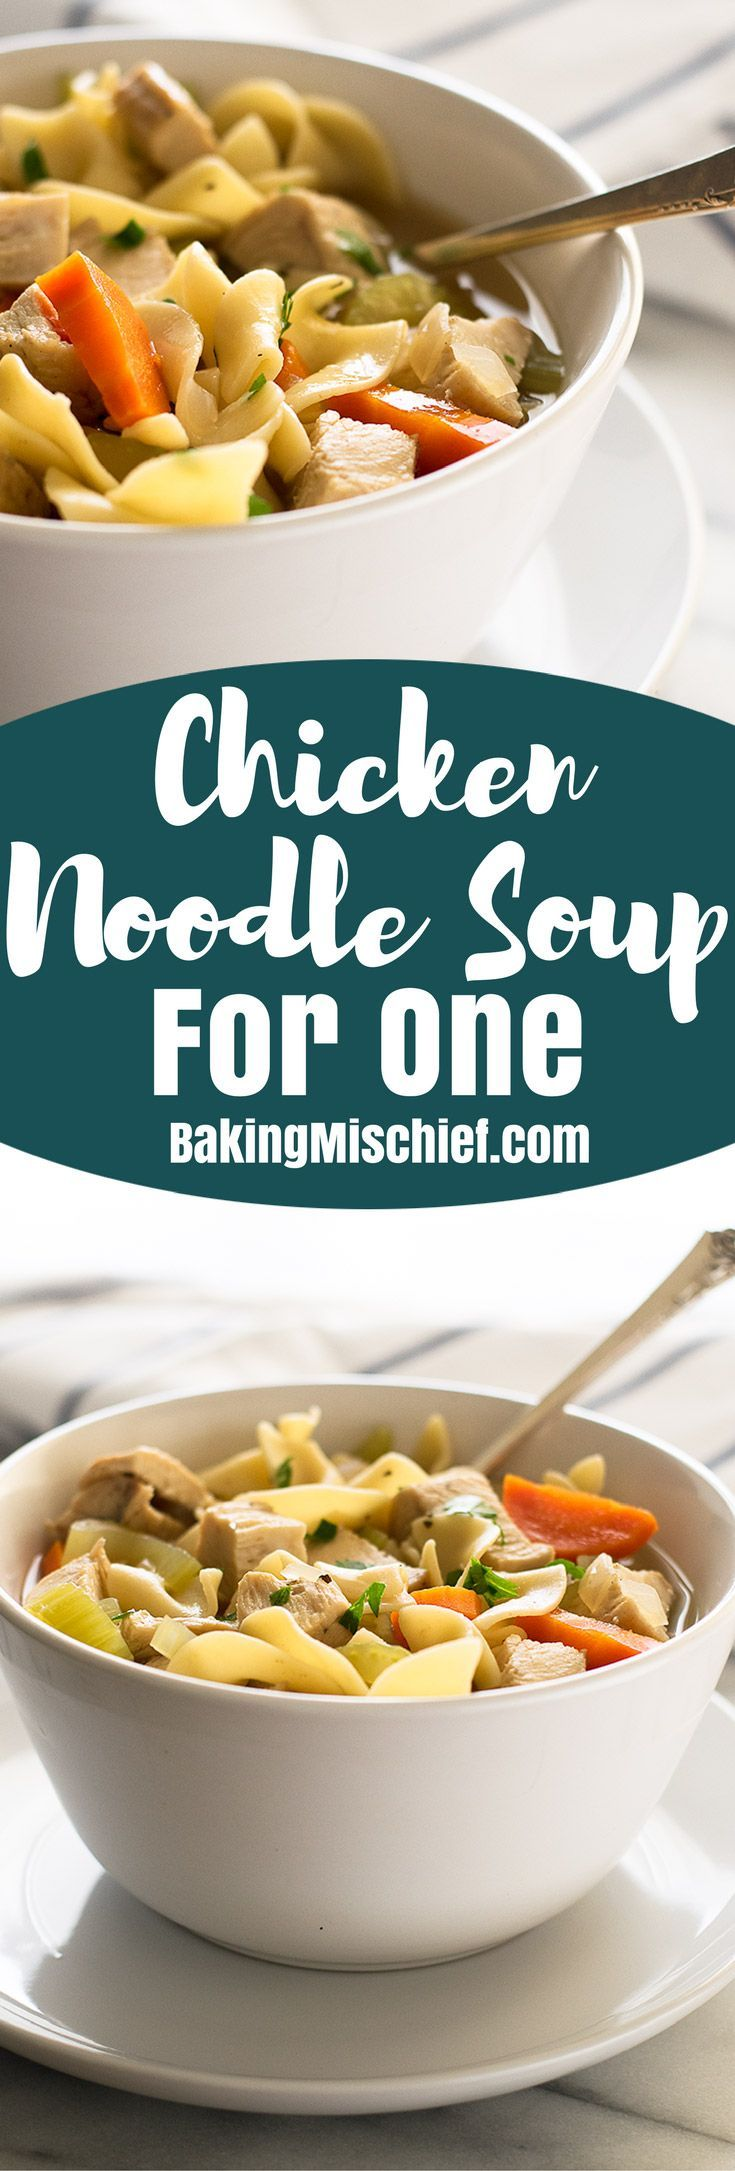 One pot and twenty minutes is all you need to make this quick and easy chicken noodle soup for one! From http://BakingMischief.com   Recipes for One   Lunch for One   Easy Lunch Ideas  